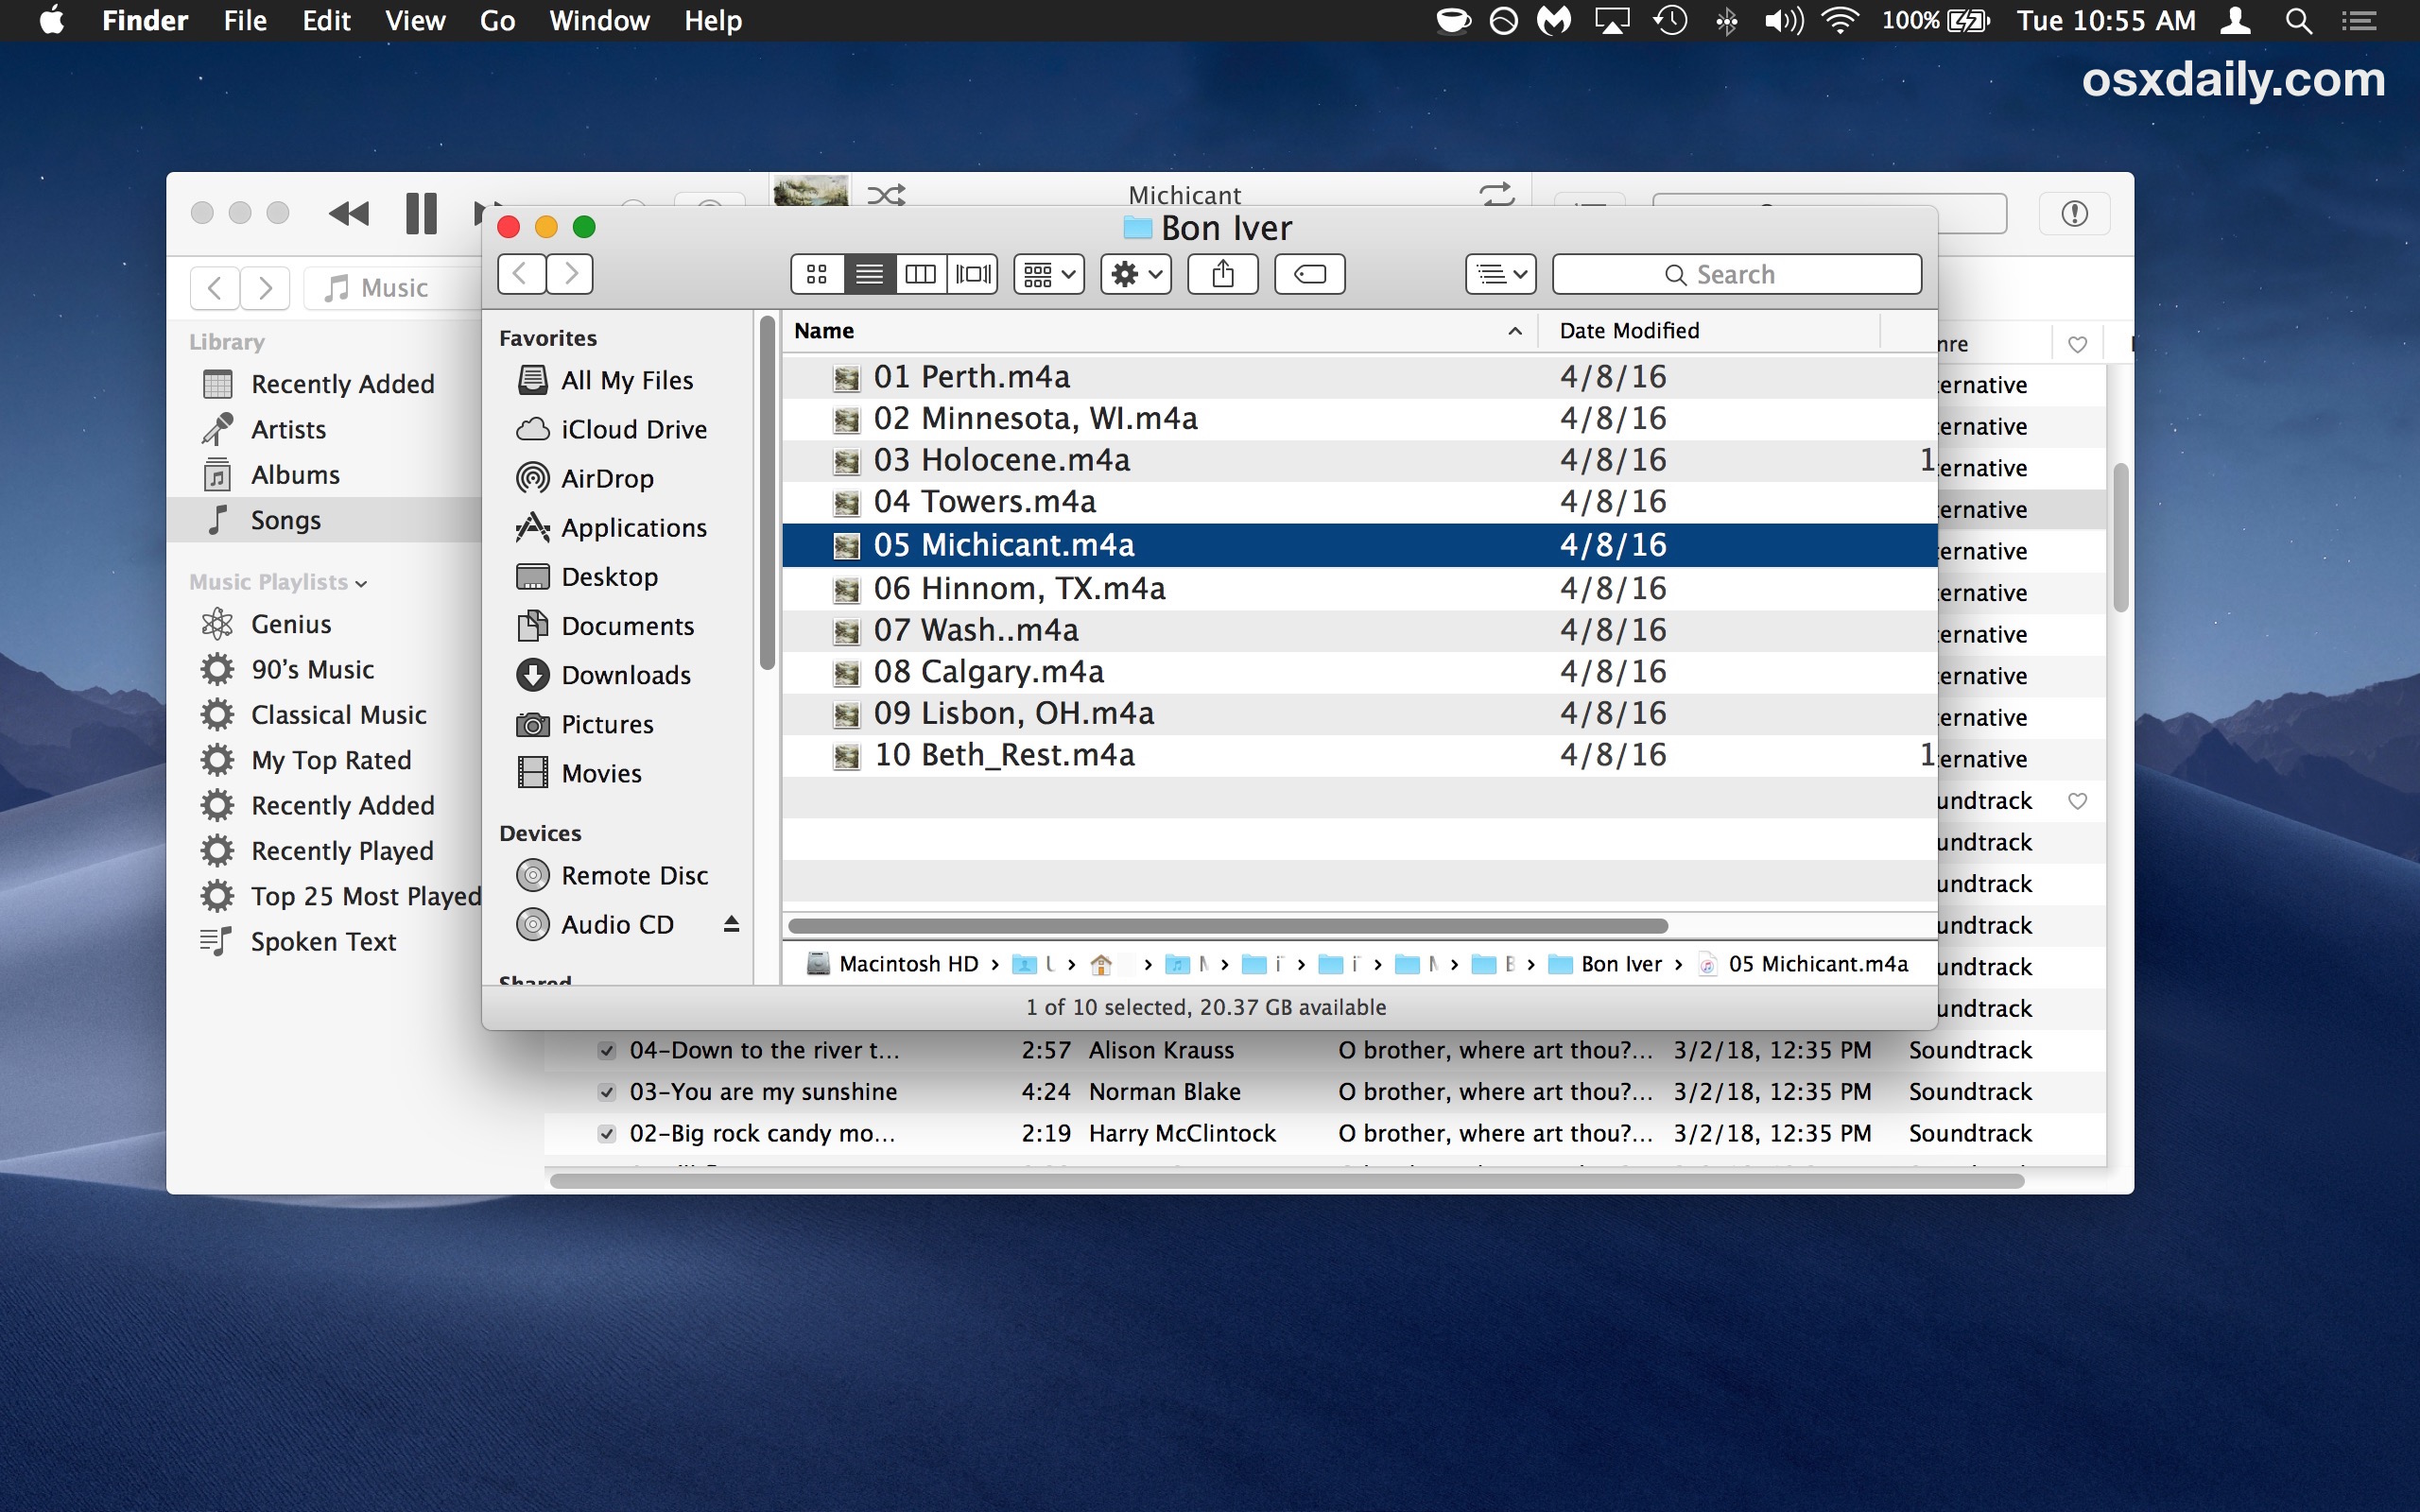 The original audio file location opened in the file system from iTunes